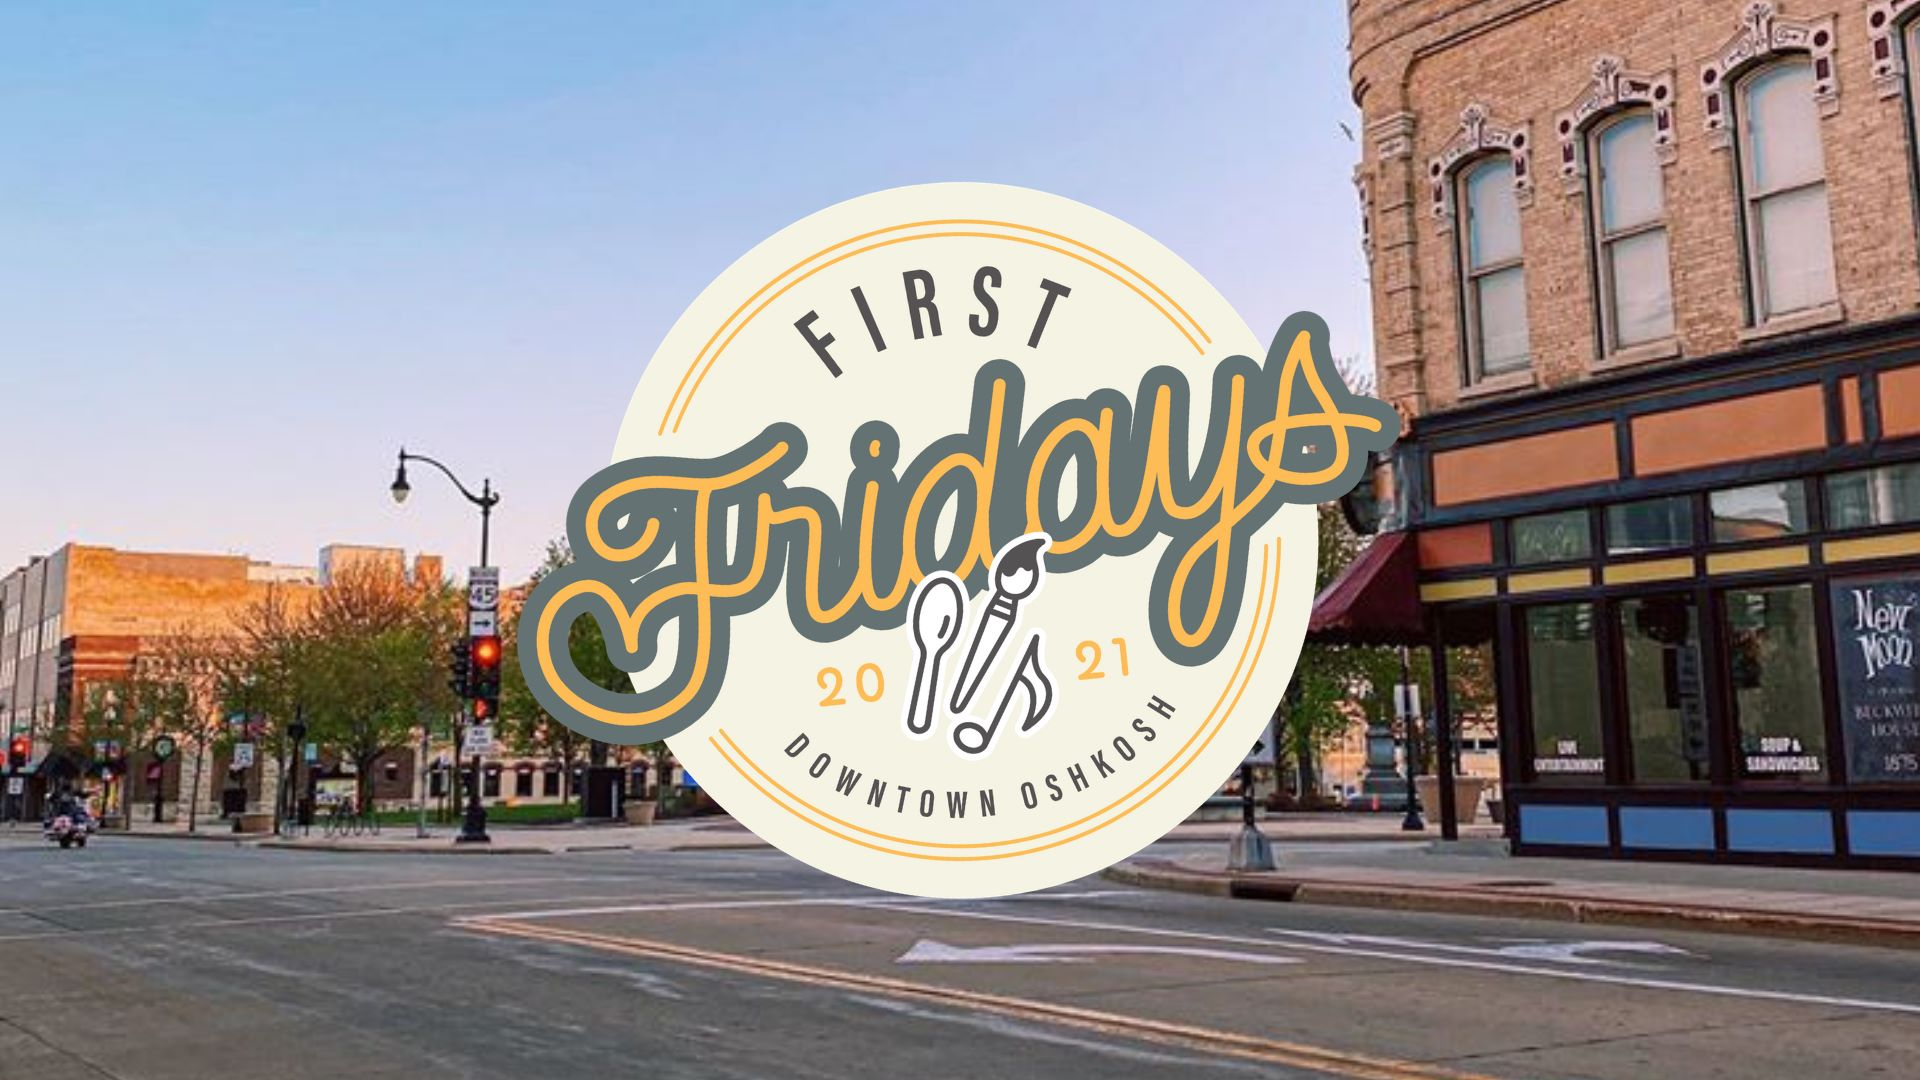 April First Friday in Downtown Oshkosh